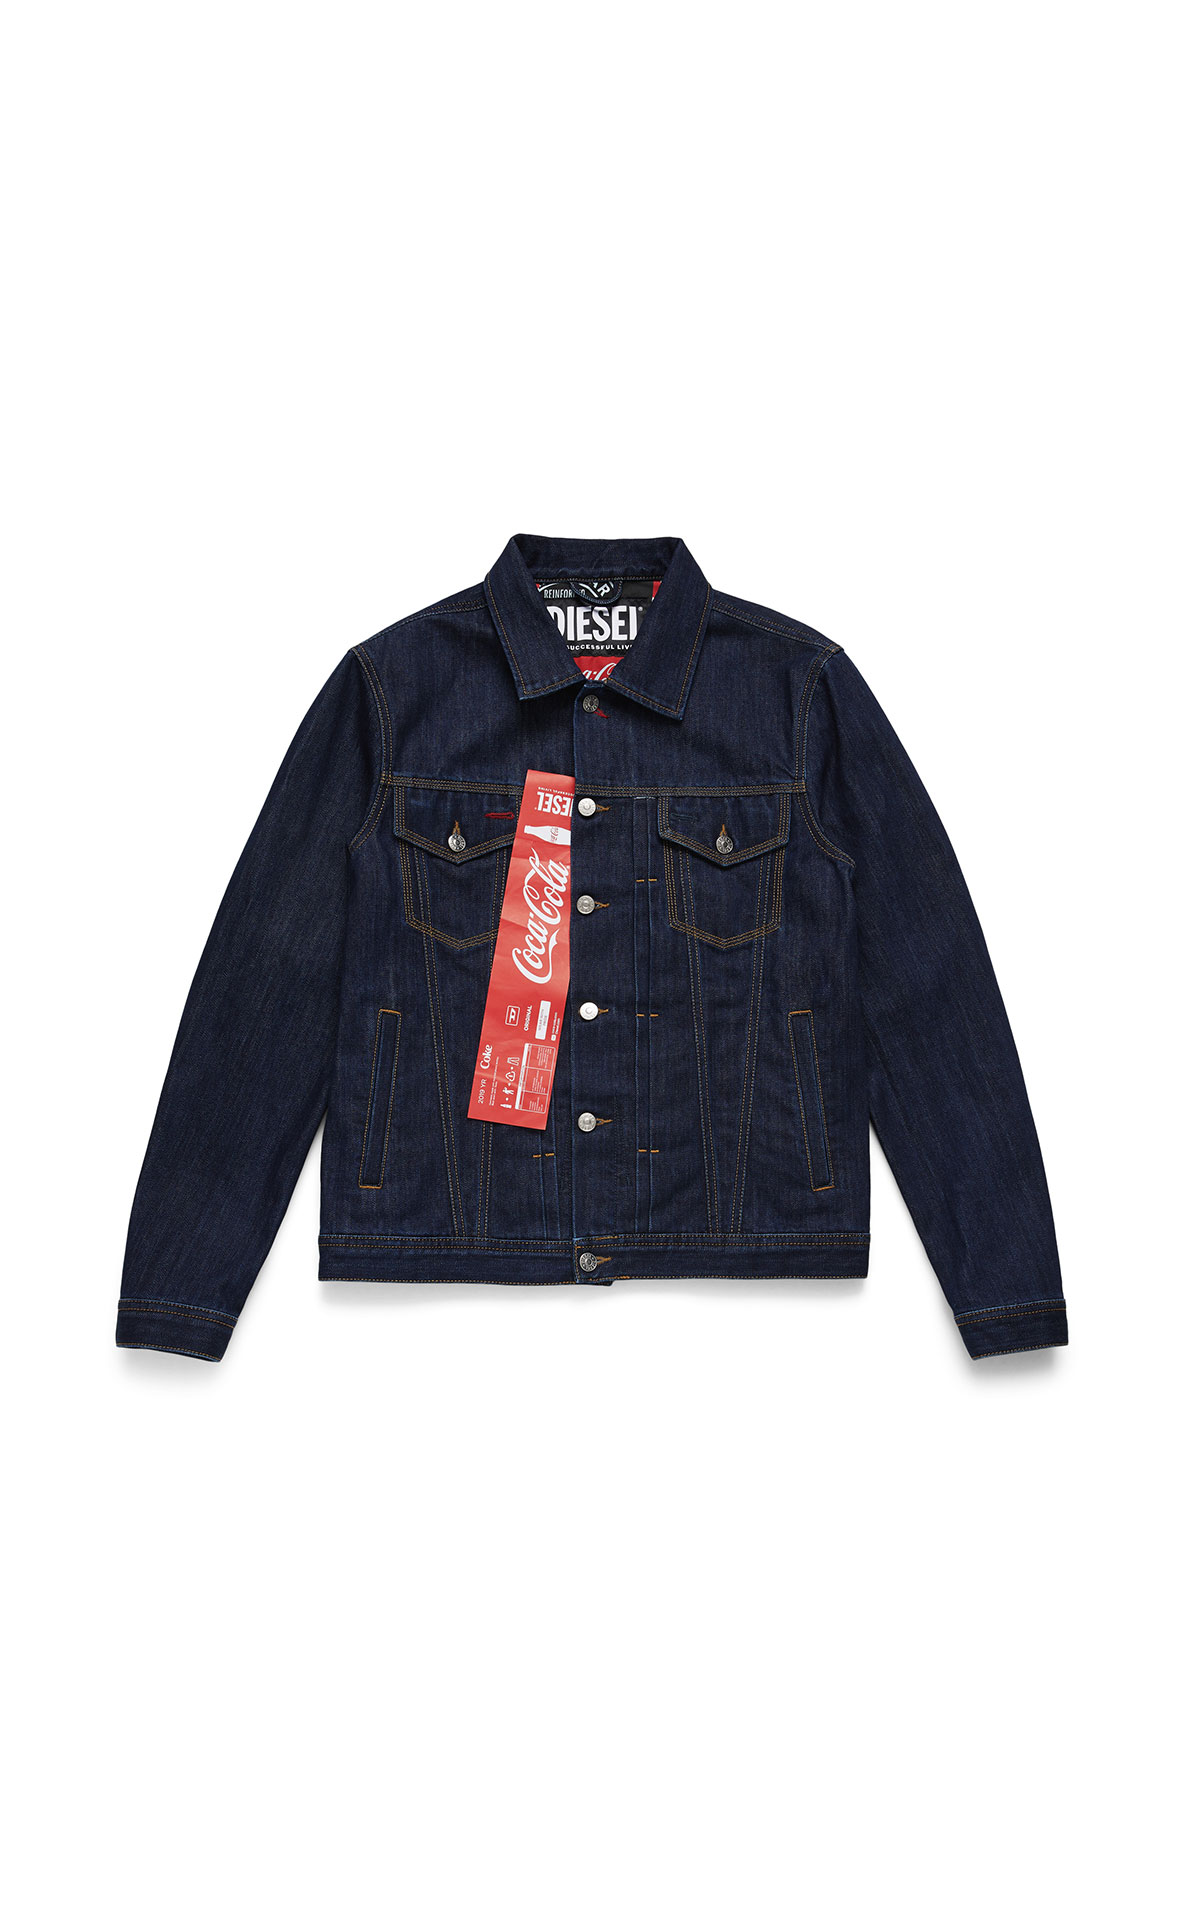 Diesel x coca cola denim jacket at The Bicester Village Shopping Collection